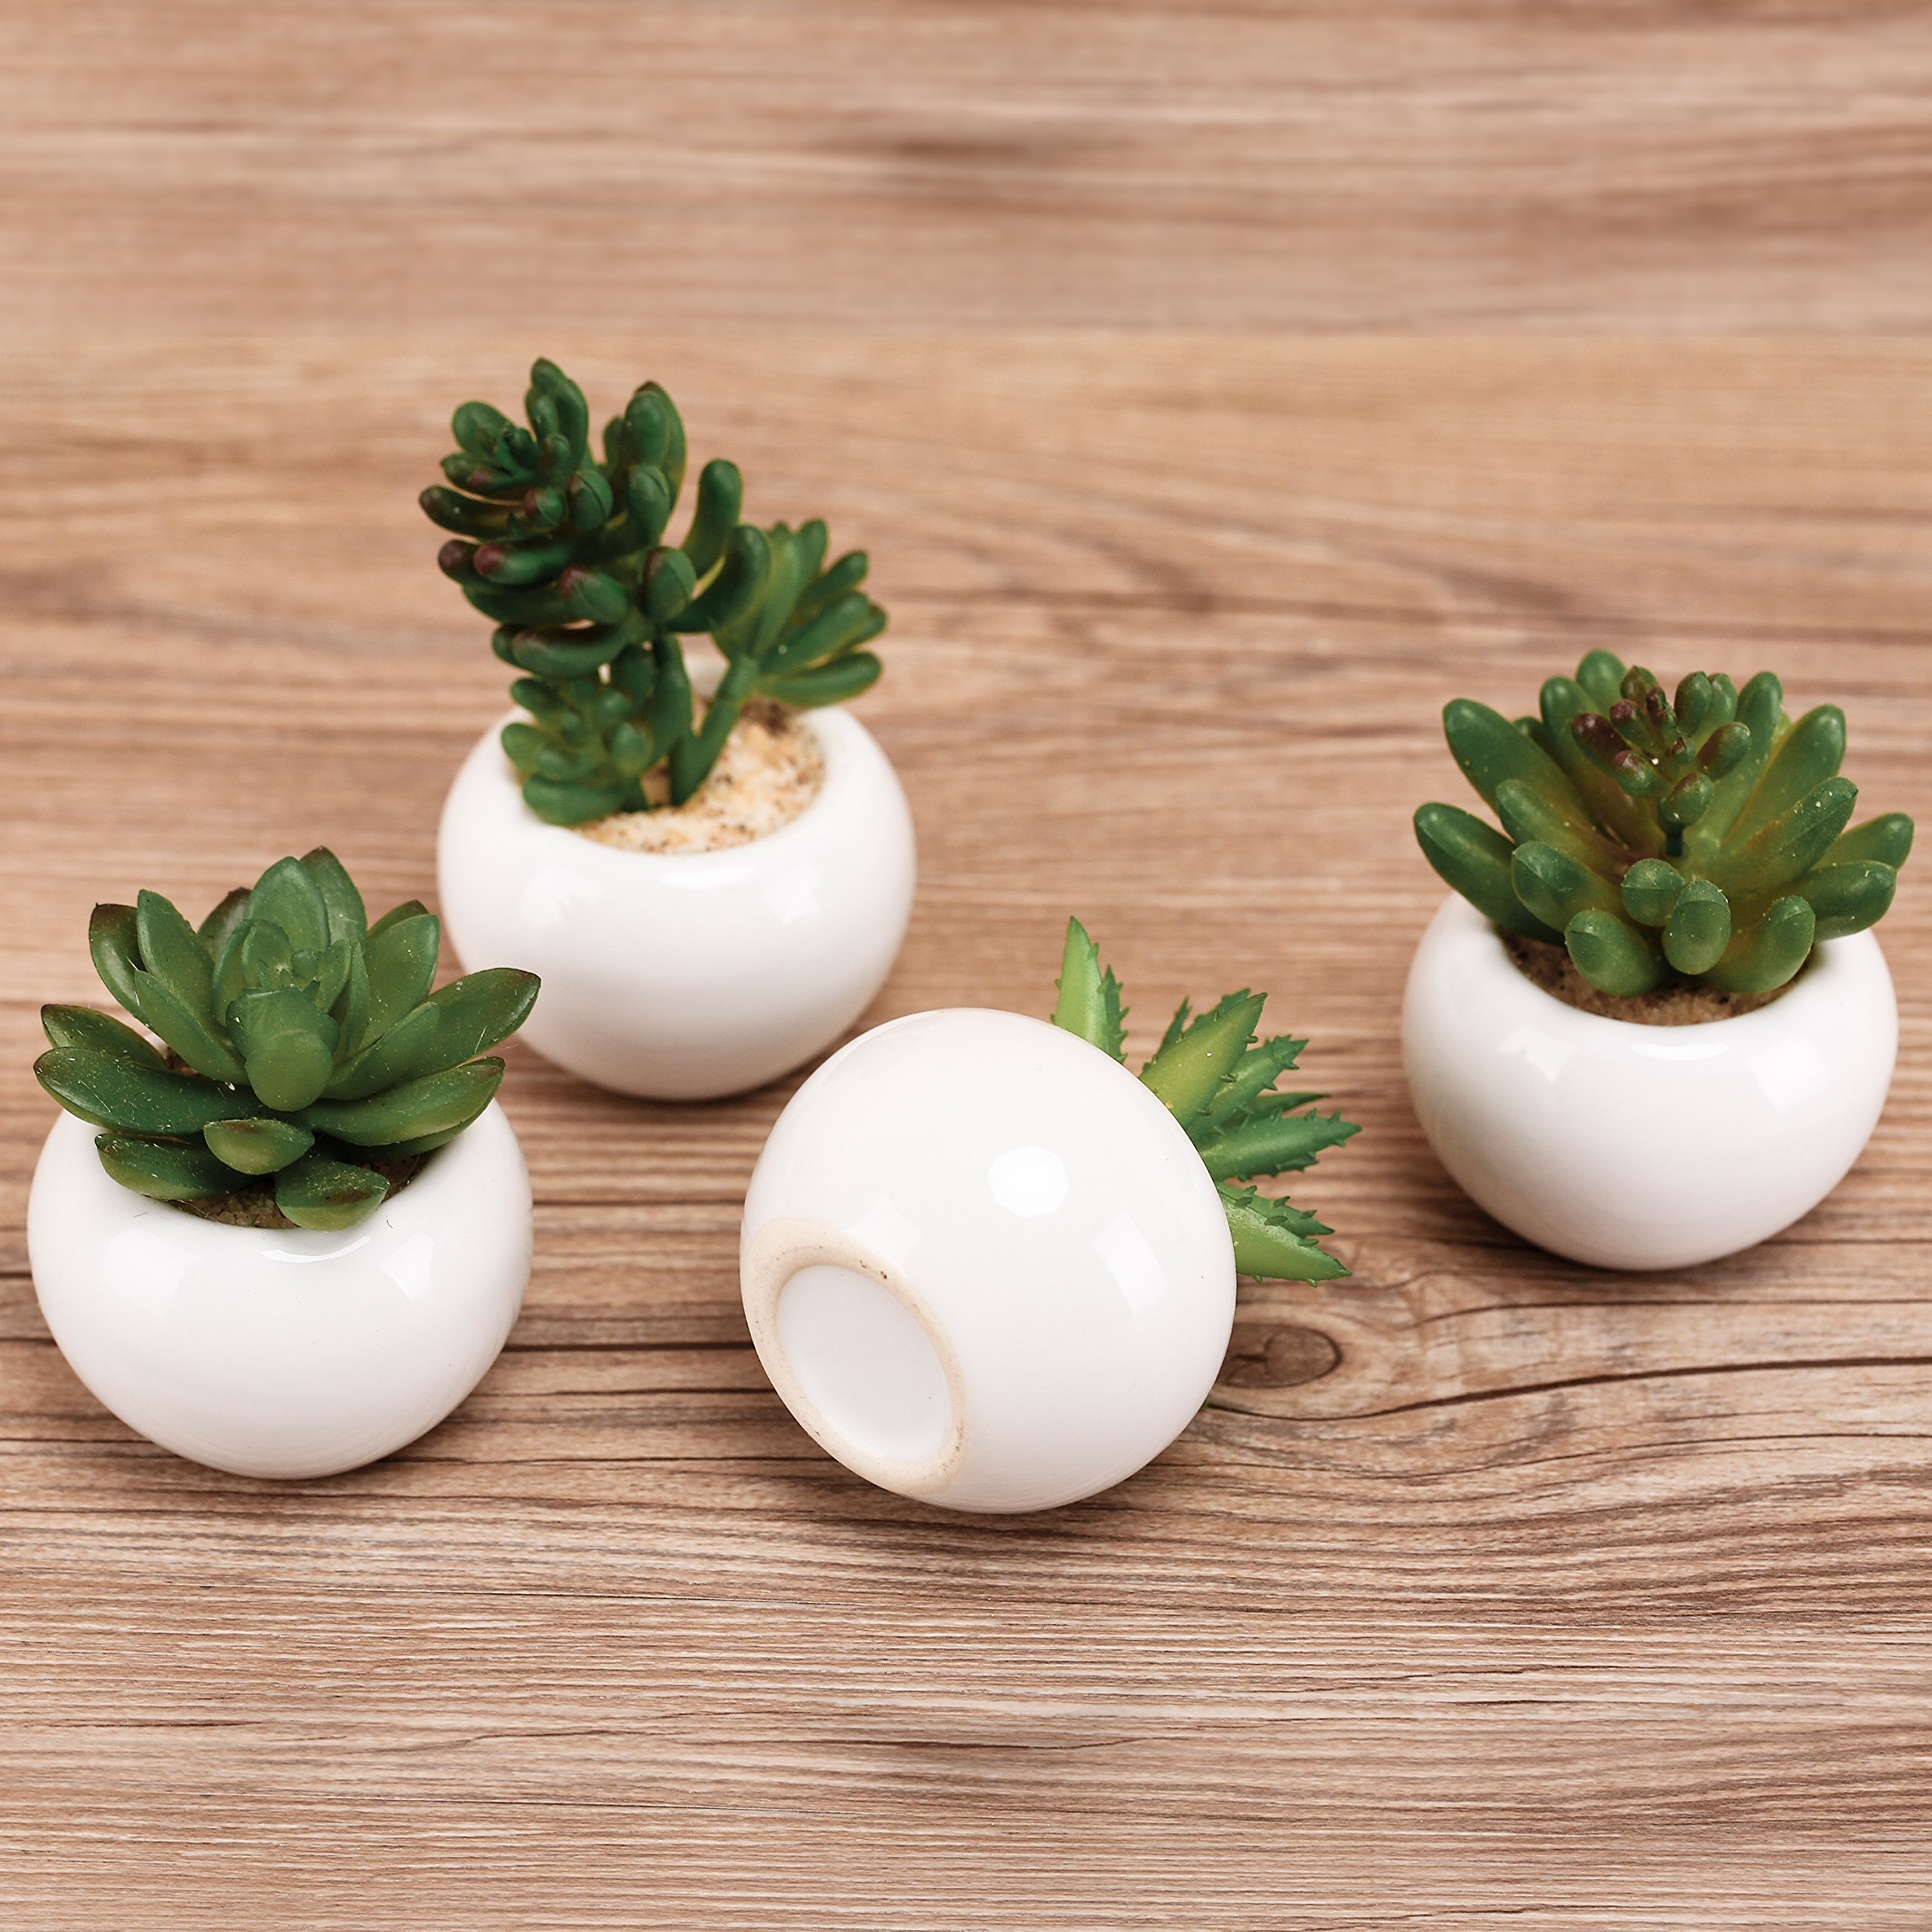 3-inch Mixed Green Artificial Succulent Plants in Round Glazed White Ceramic Pots, Set of 4 by MyGift (Image #3)